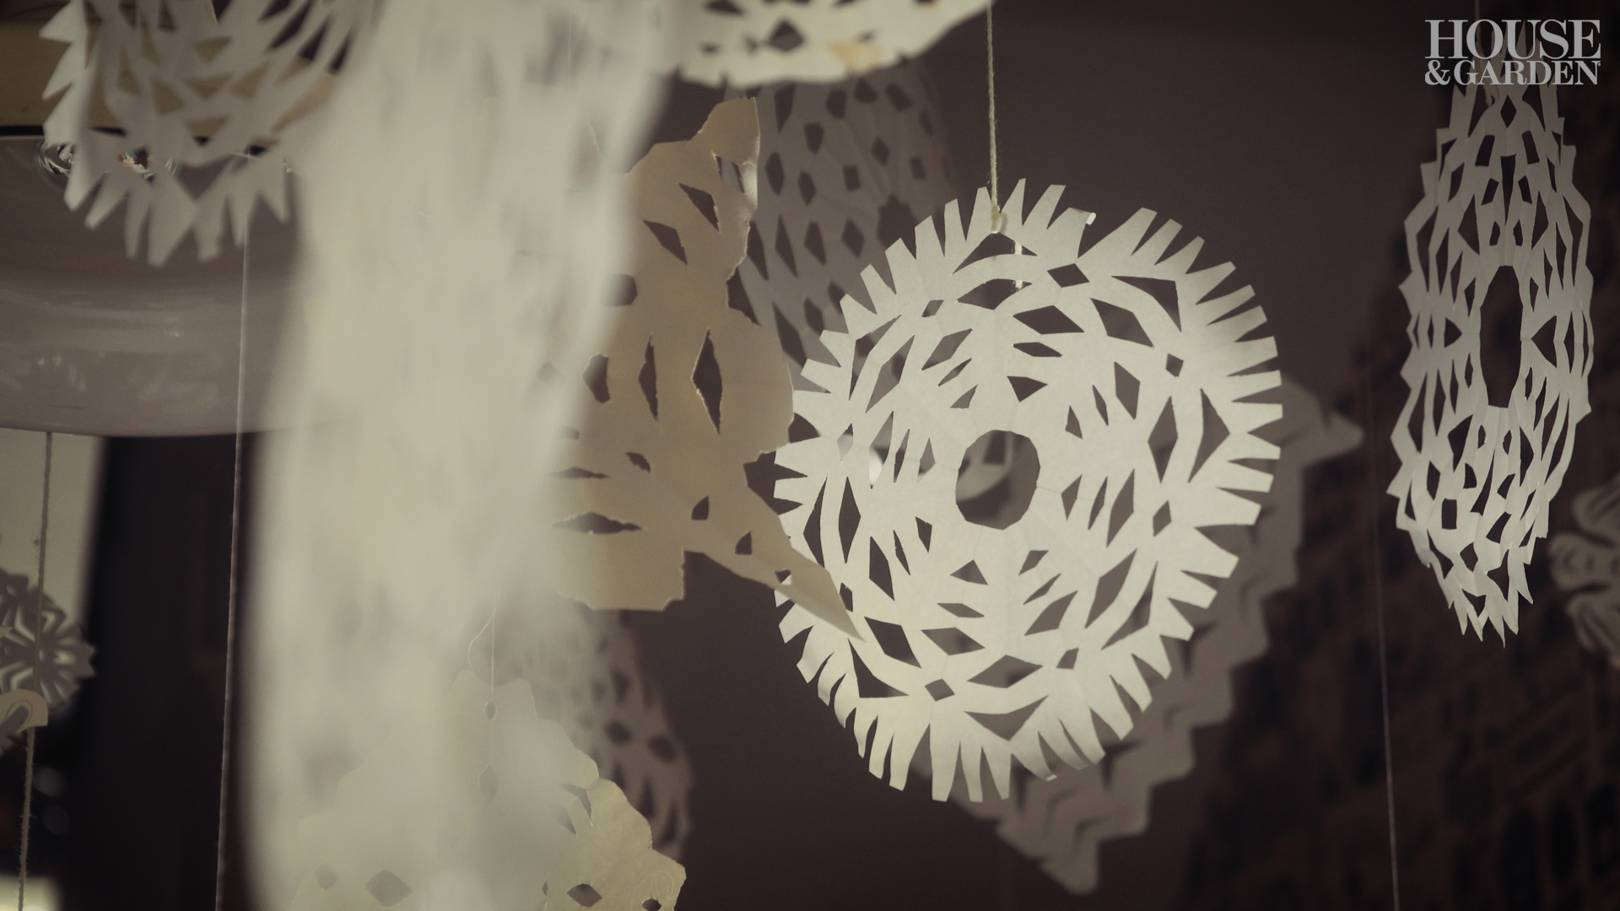 Maude makes: paper angels and snowflakes